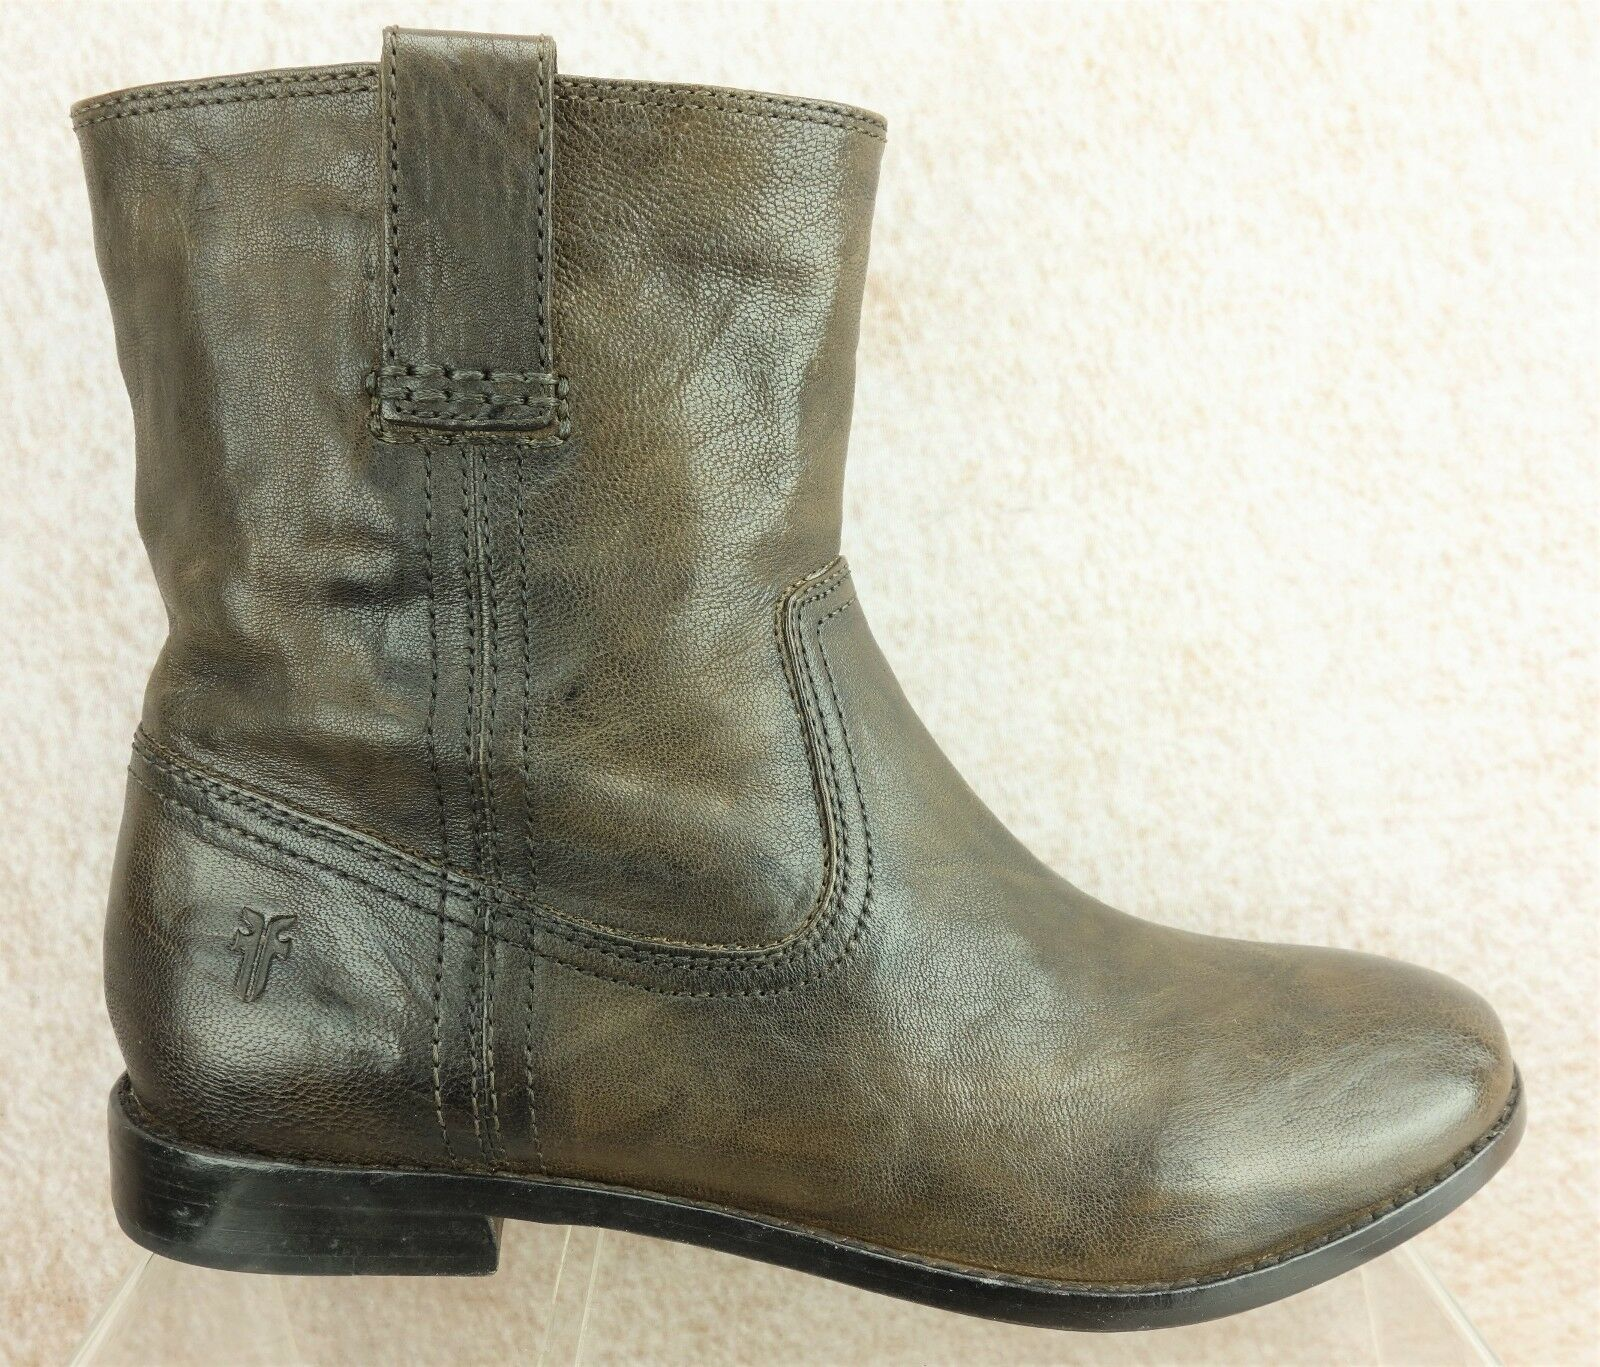 Frye Anna Shortie Brown Leather Casual Ankle Pull On Boots Womens 7.5 M